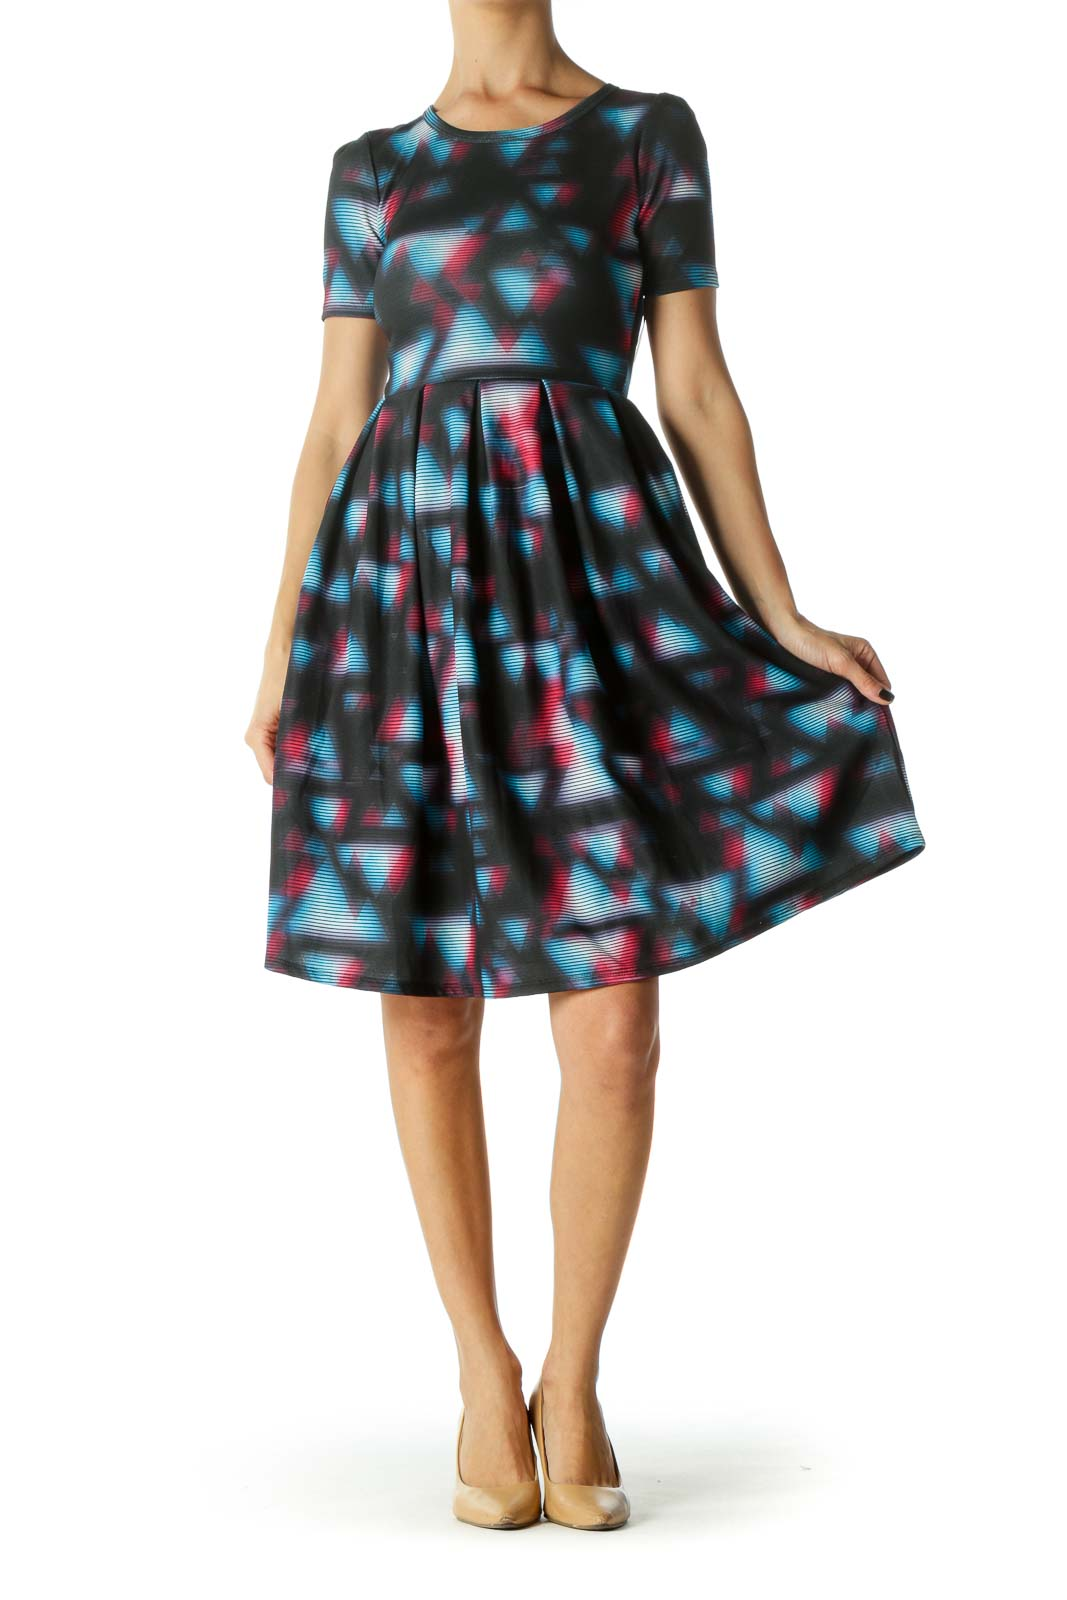 Black, Blue and Pink Geometric Print Round Neck, short Sleeve Day Dress